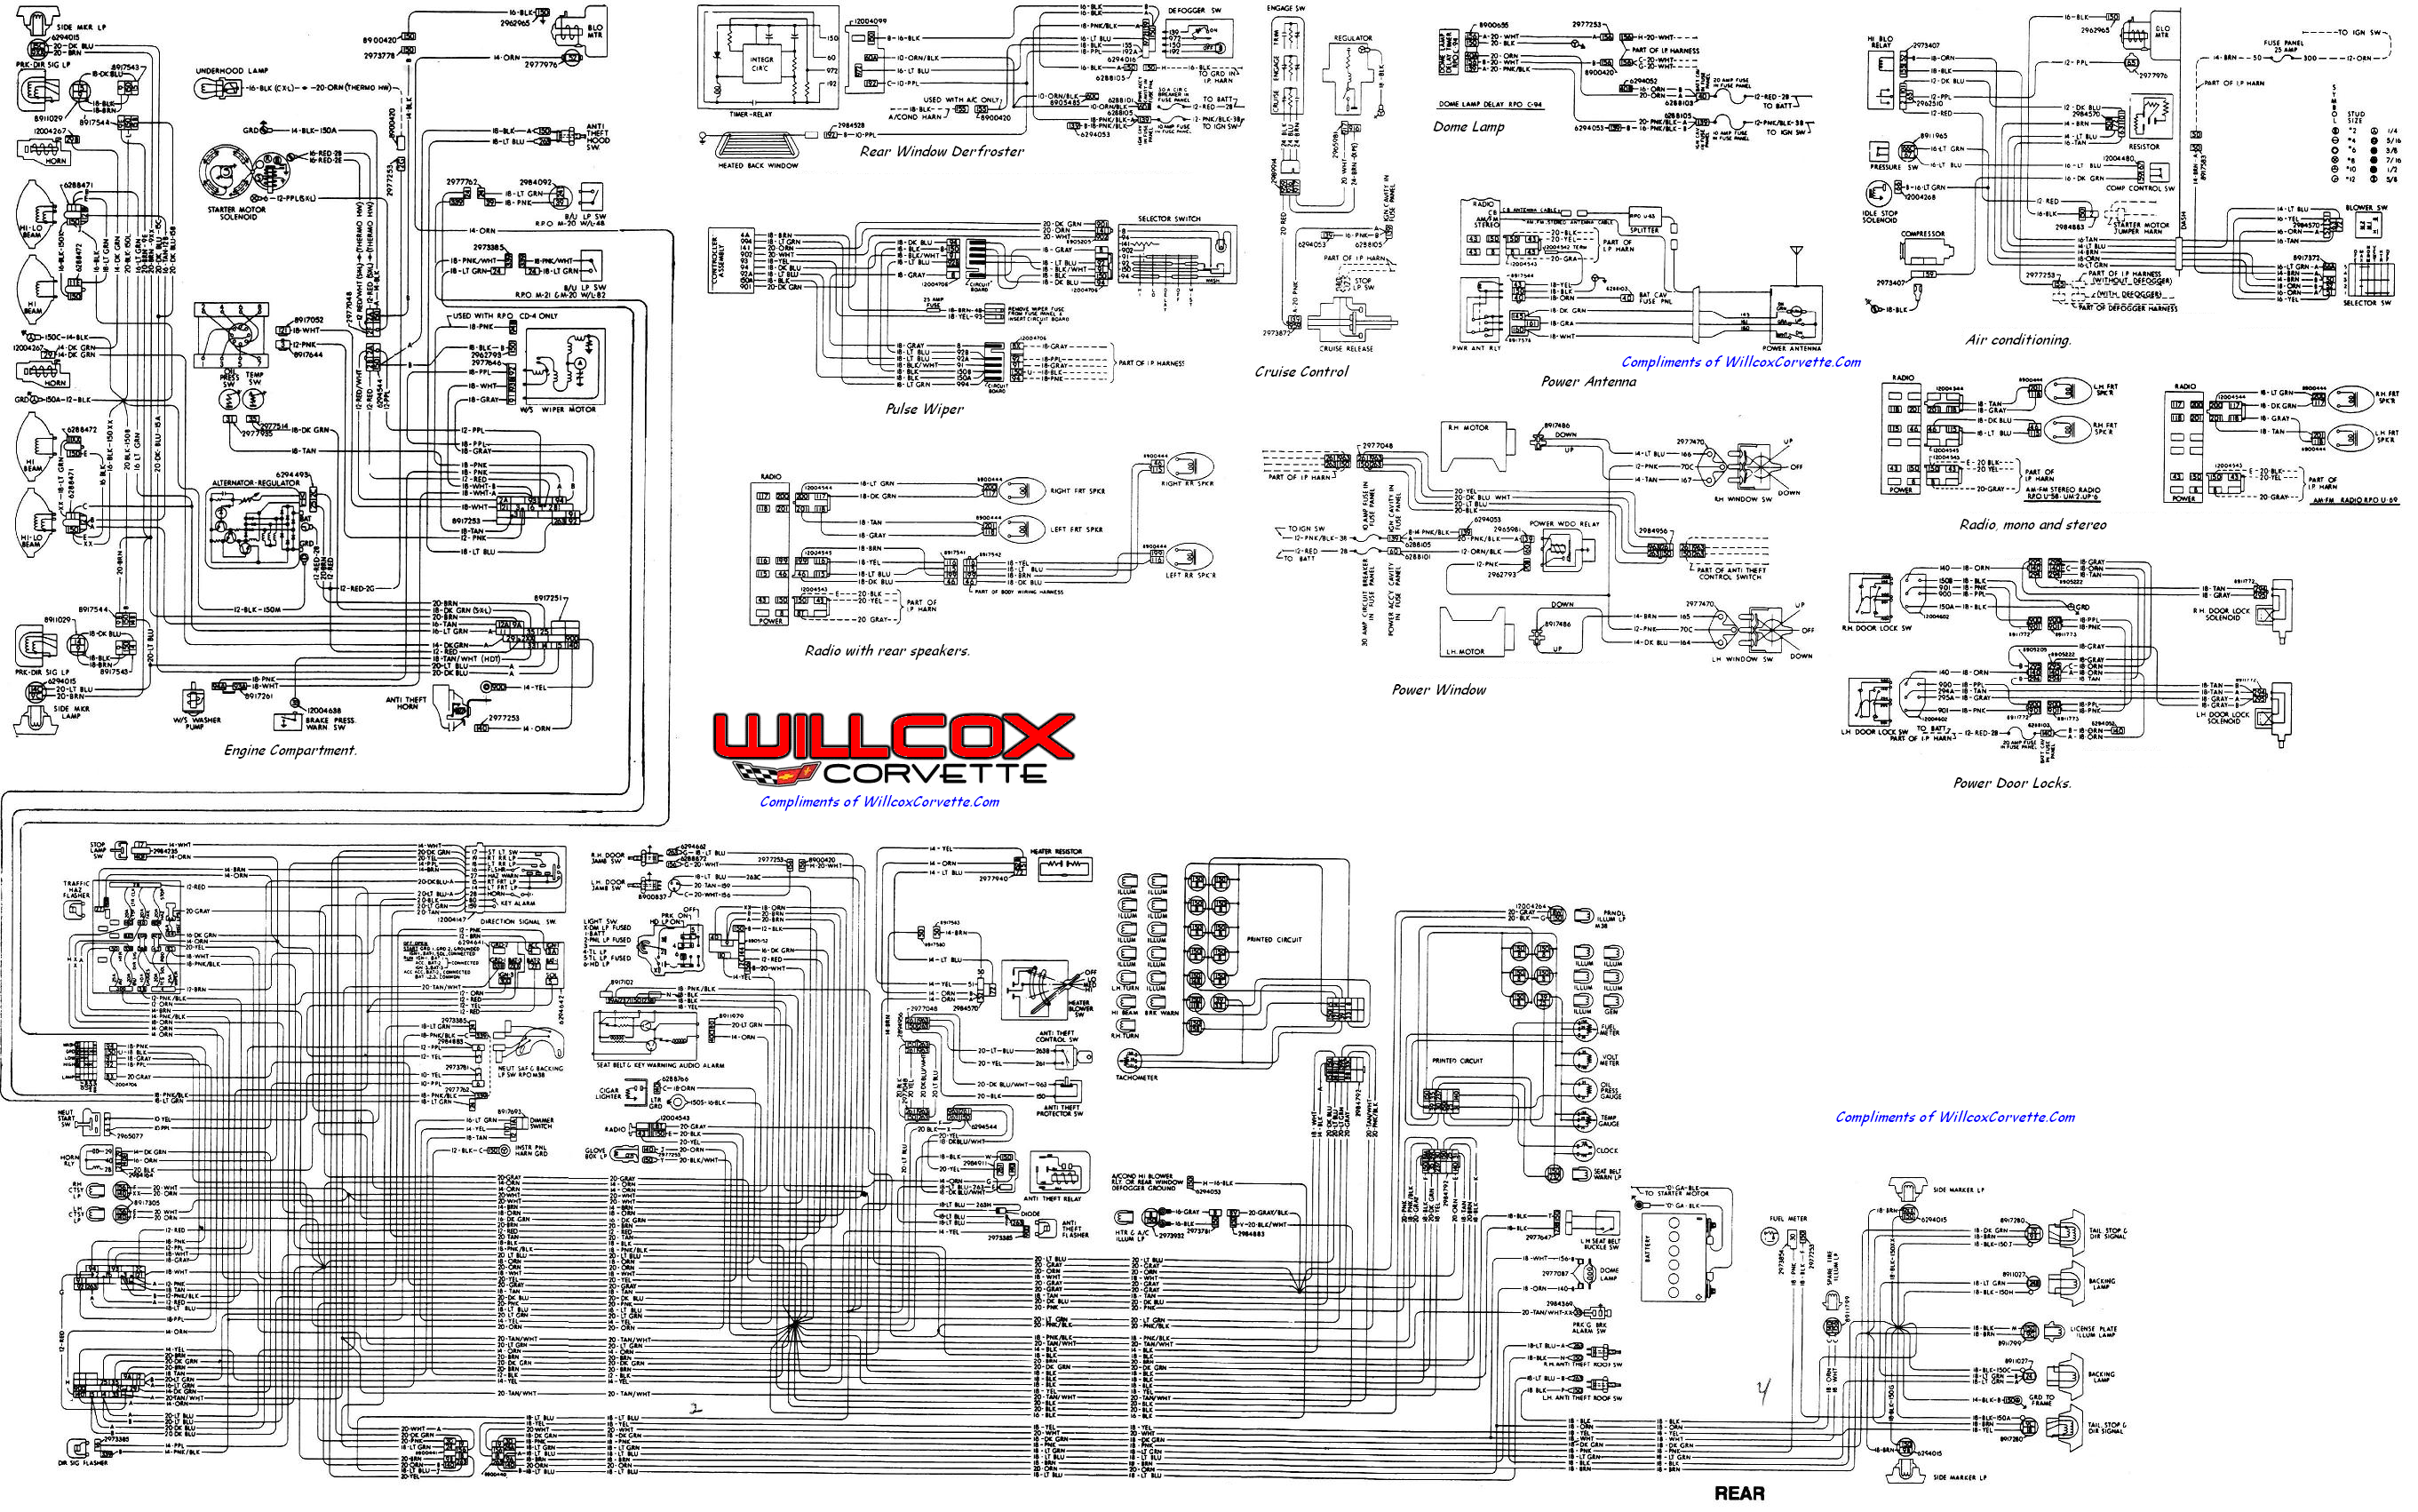 78 chevy van wiring harness diagram 1984 el camino fuse box | wiring library 78 chevy truck wiring harness